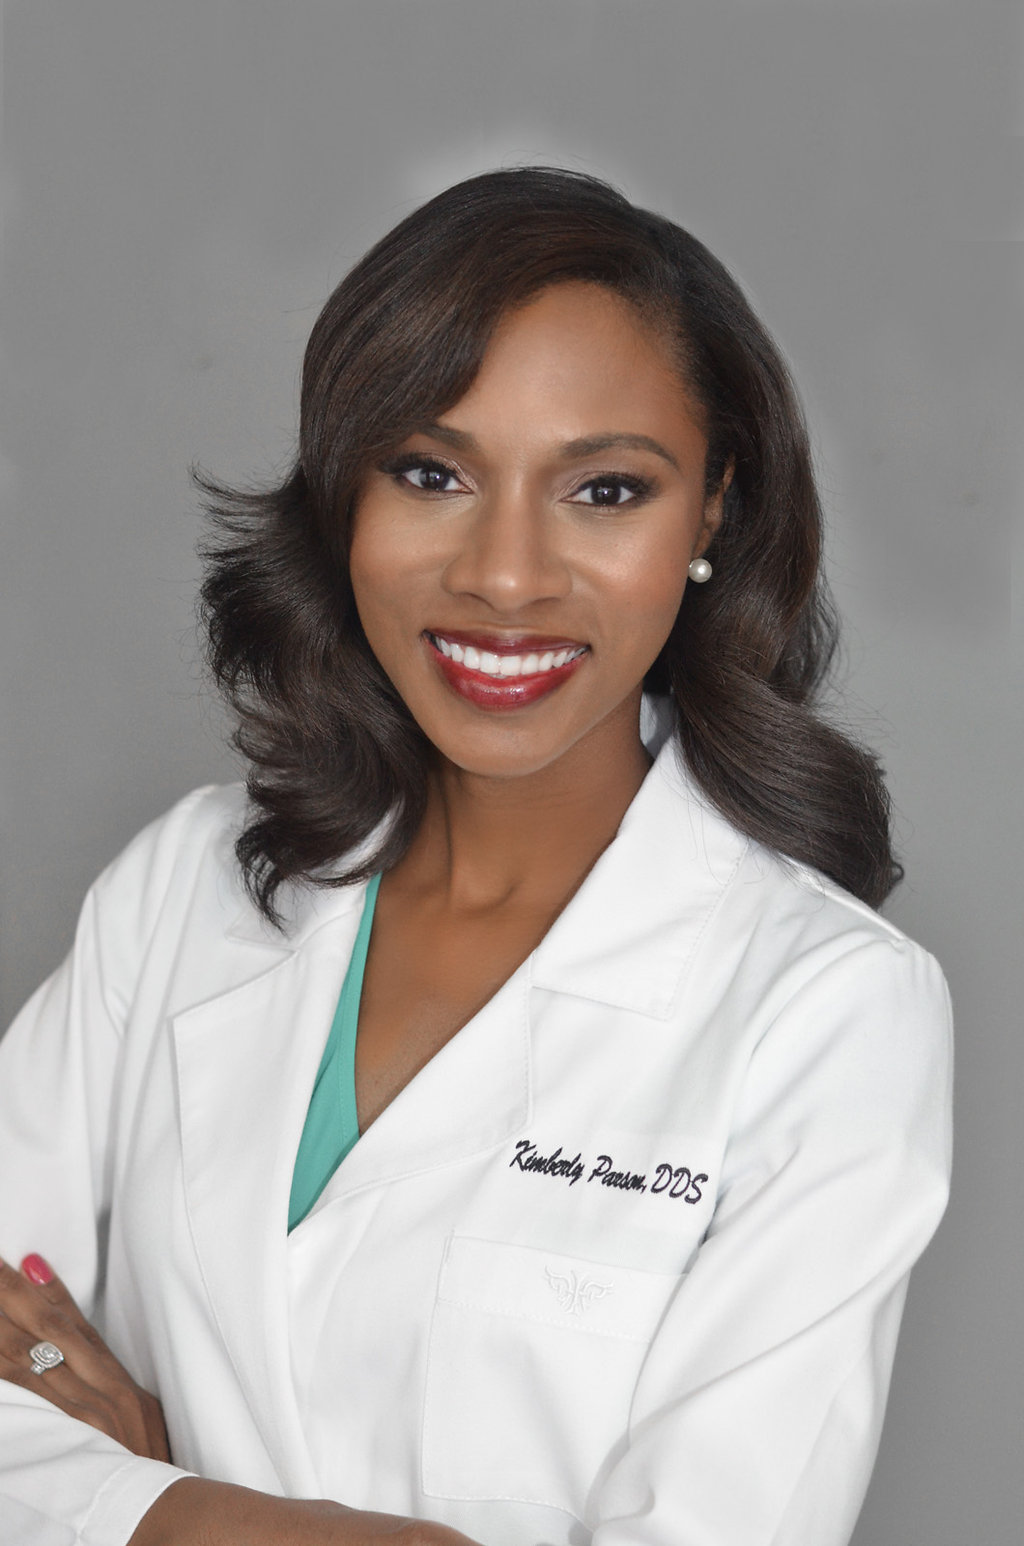 Dr Kimberly Parson DDS